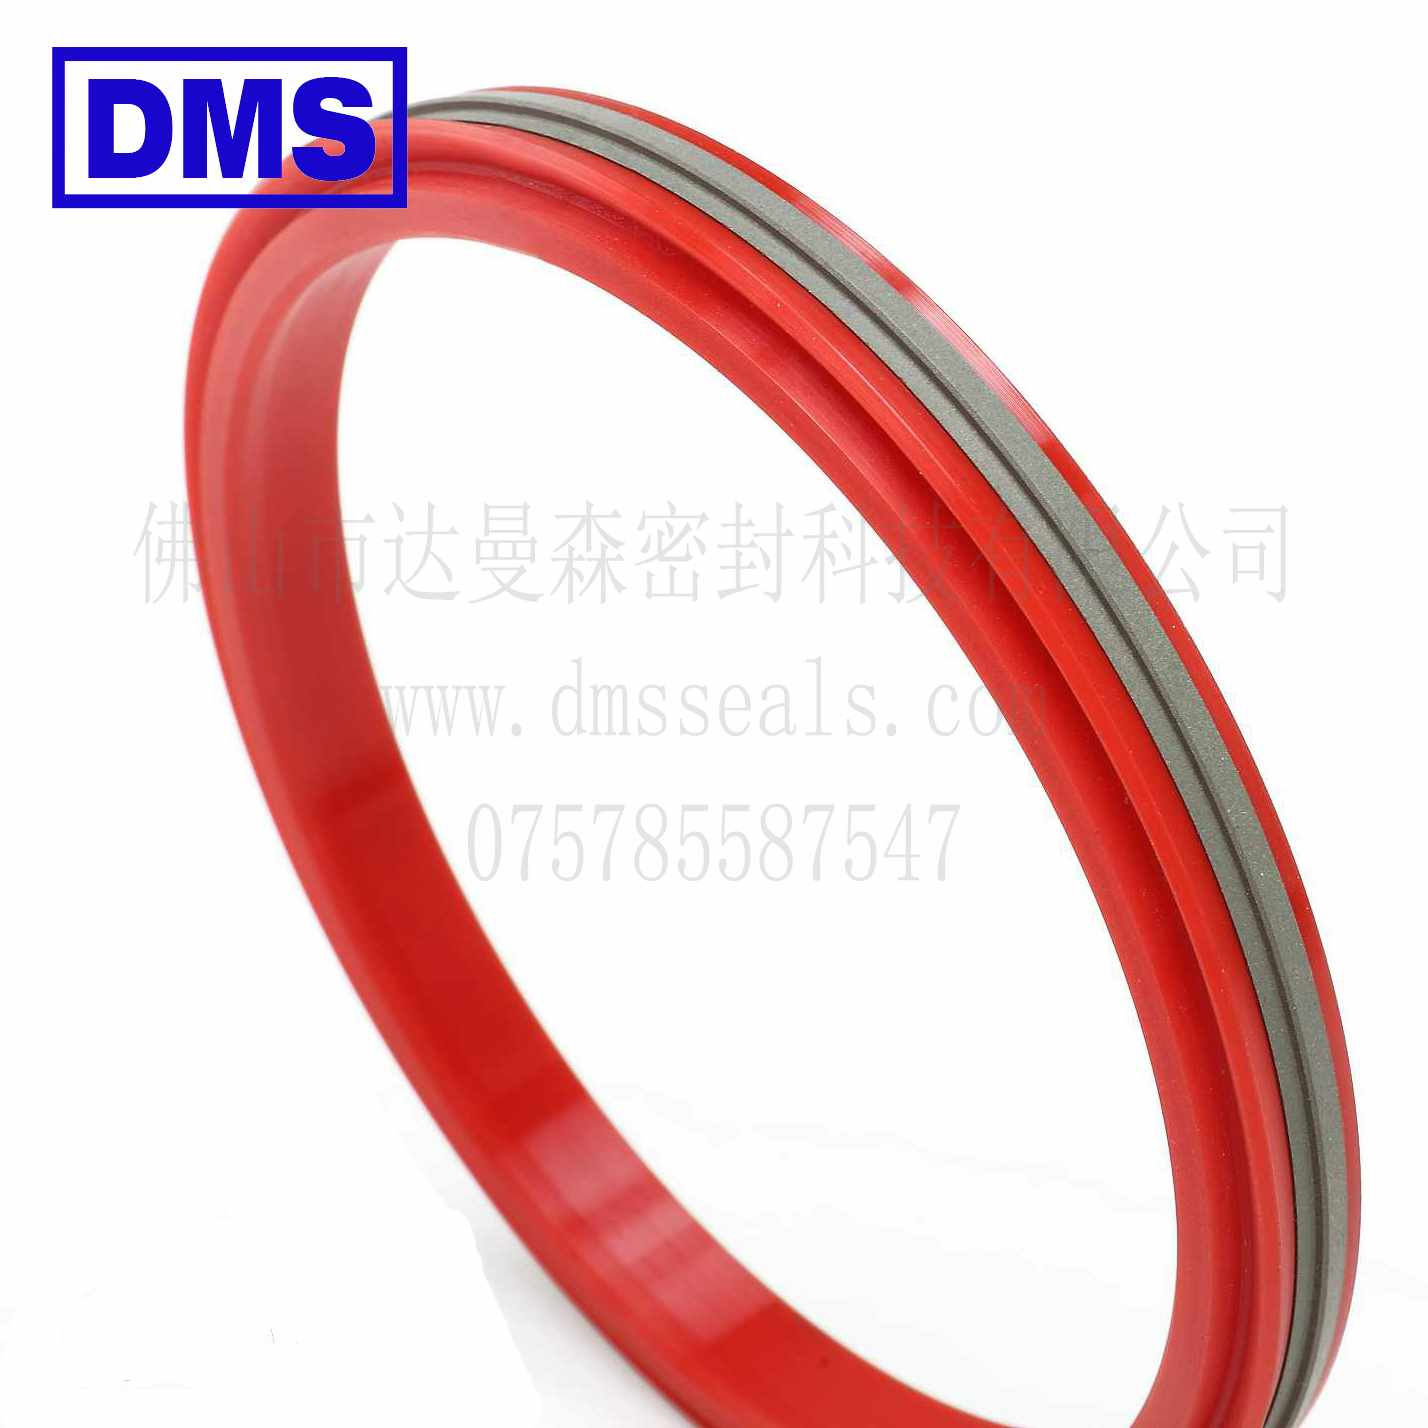 application-DMS Seal Manufacturer pneumatic piston seals with nbr or fkm o ring for light and medium